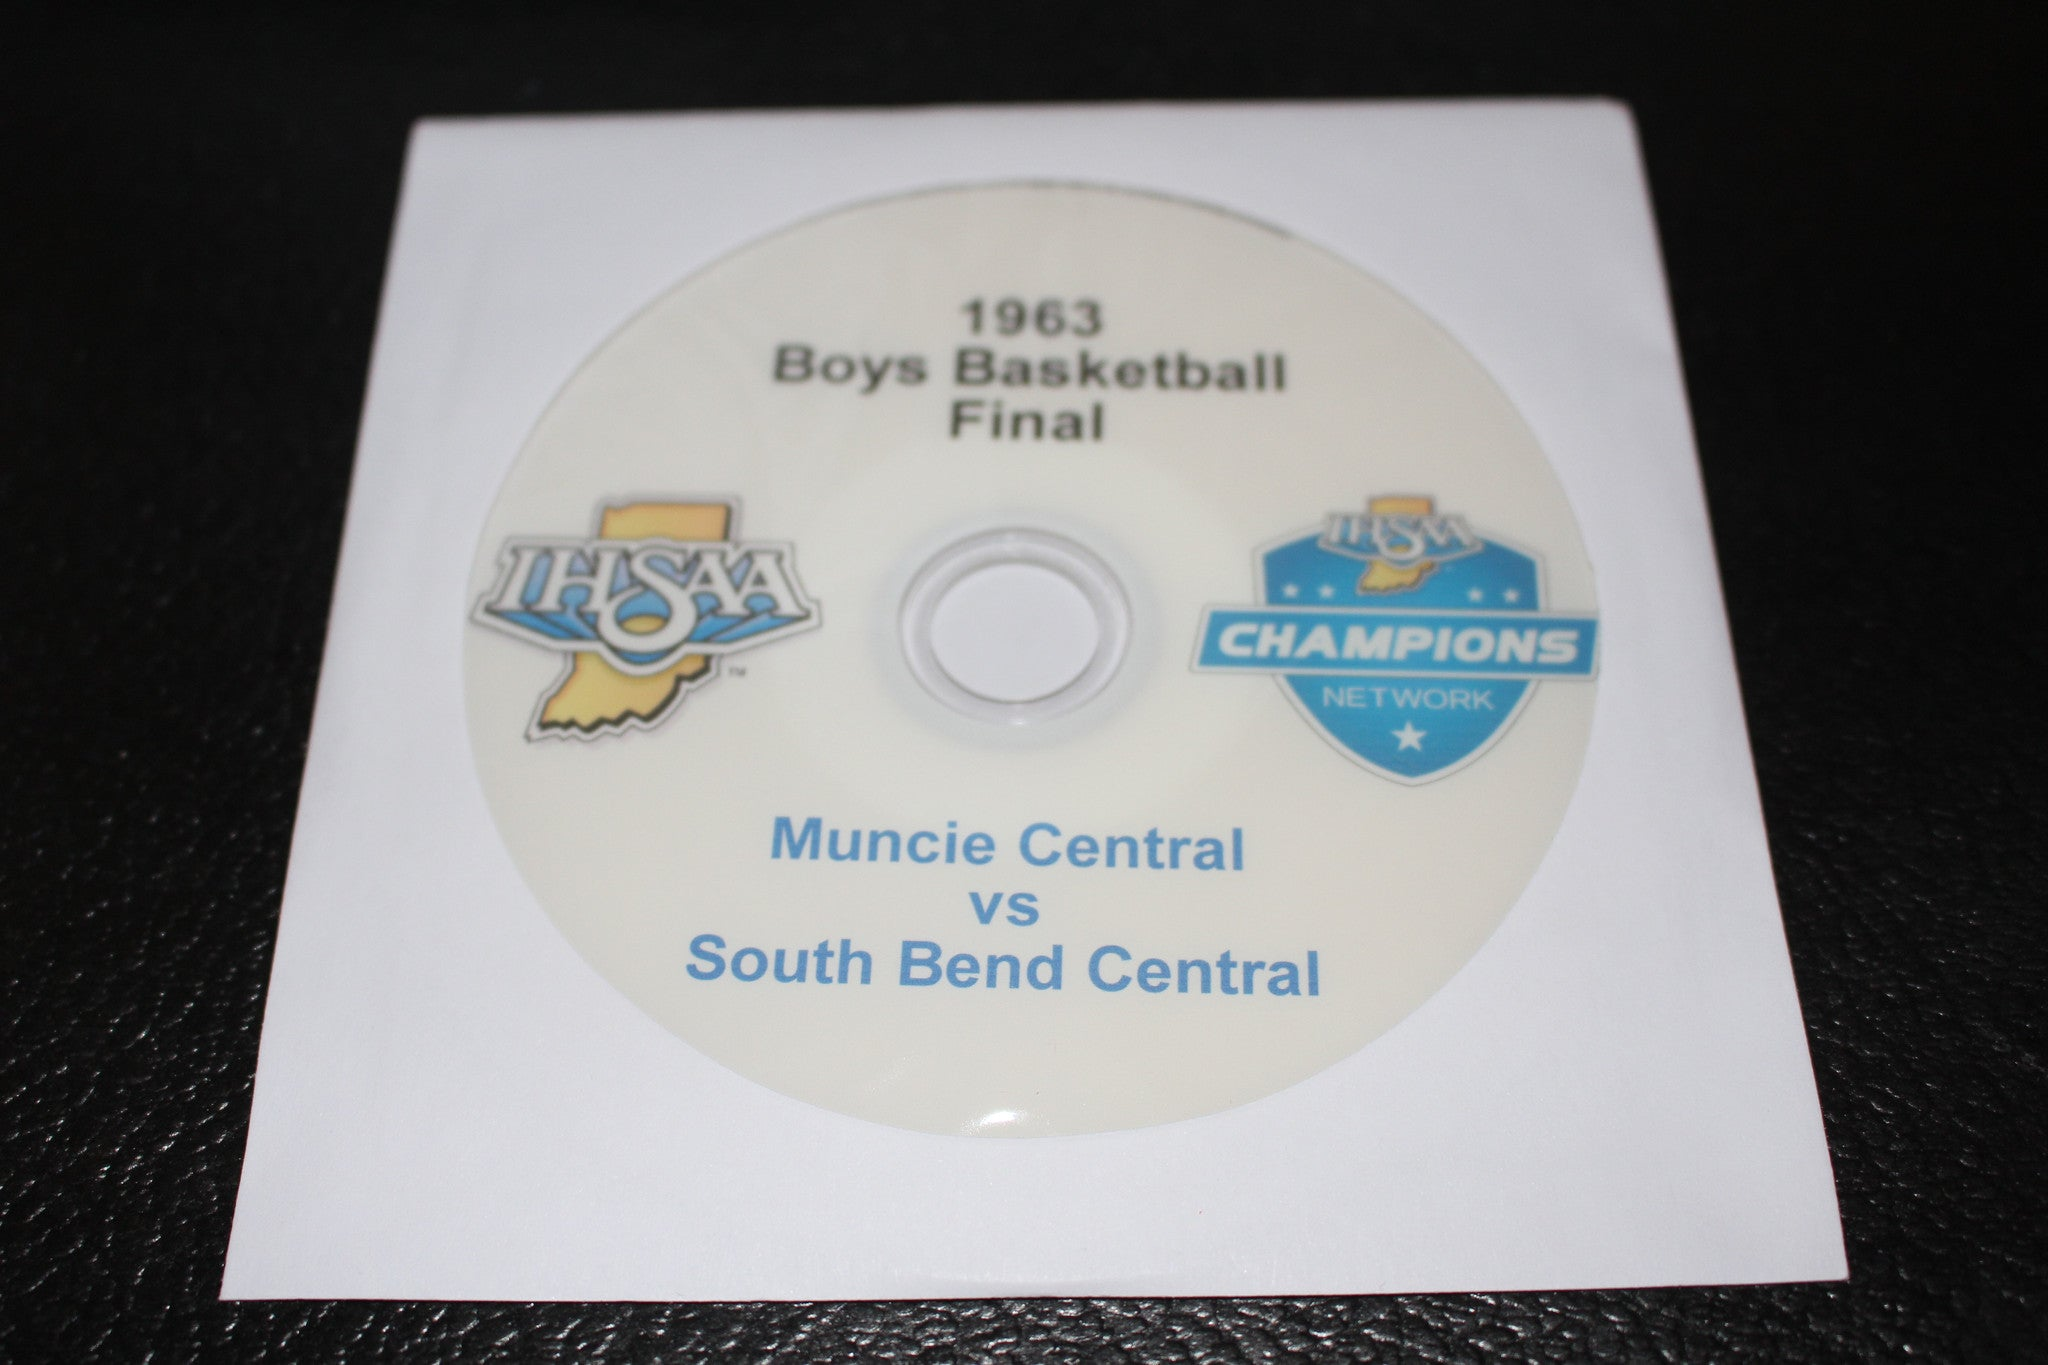 1963 Indiana High School Basketball Final DVD - Vintage Indy Sports